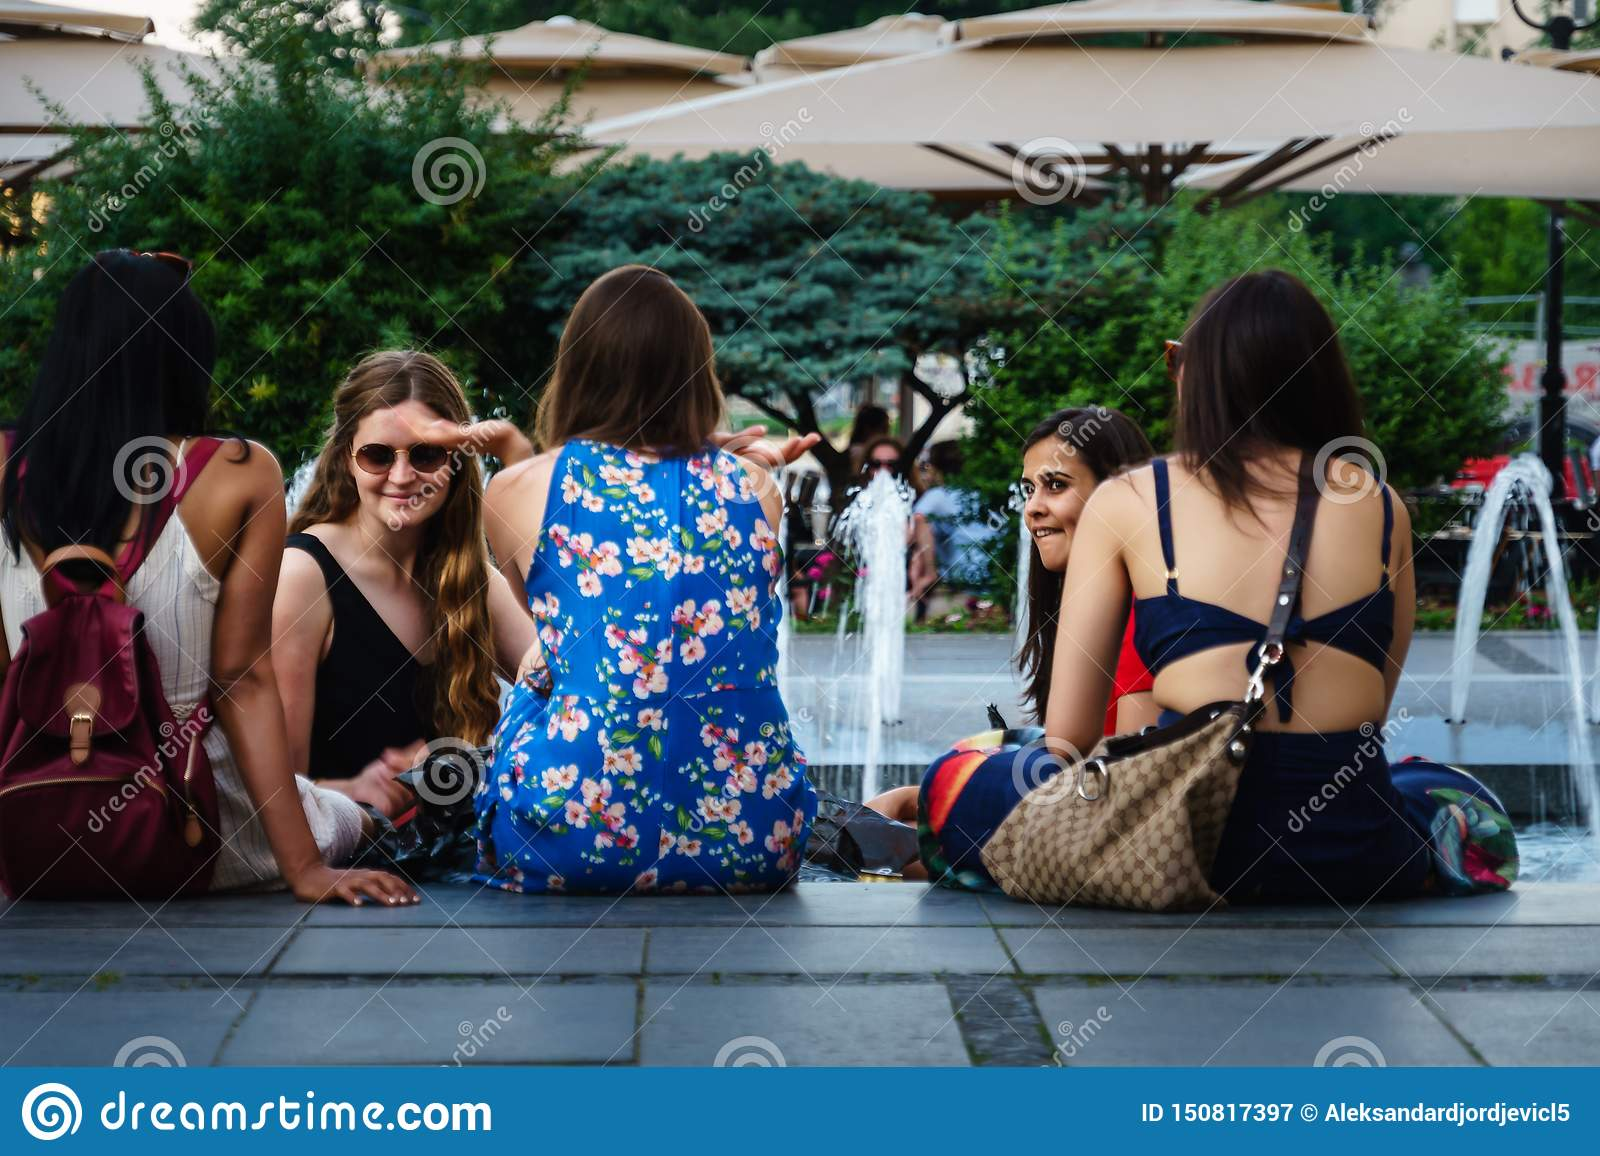 Belgrade,Serbia-June 10, 2019: Girls chatting near the fountain in the center